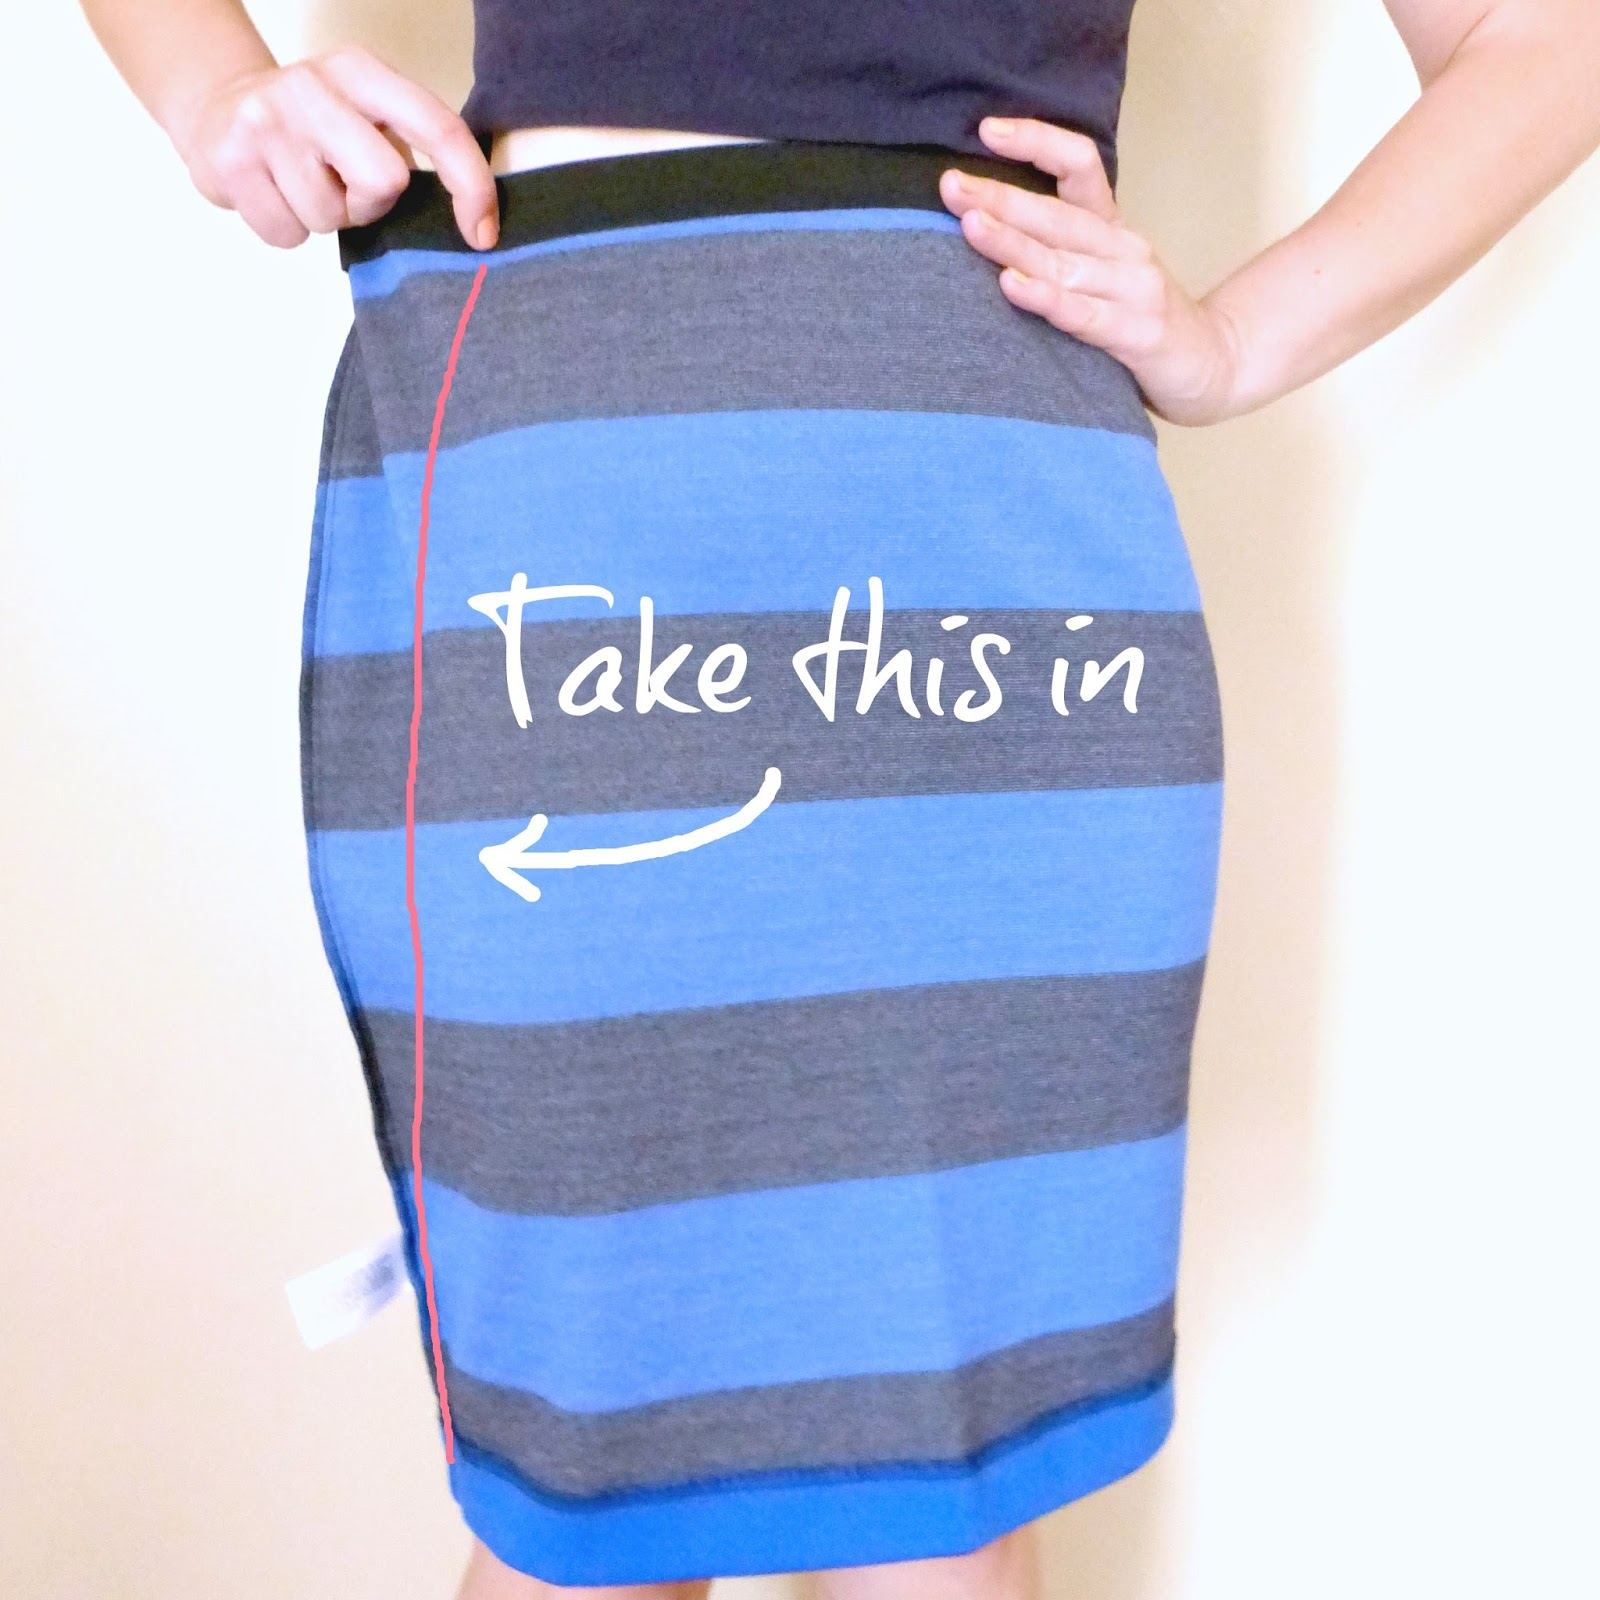 basic alterations 101, taking in a skirt on the side seams tutorial